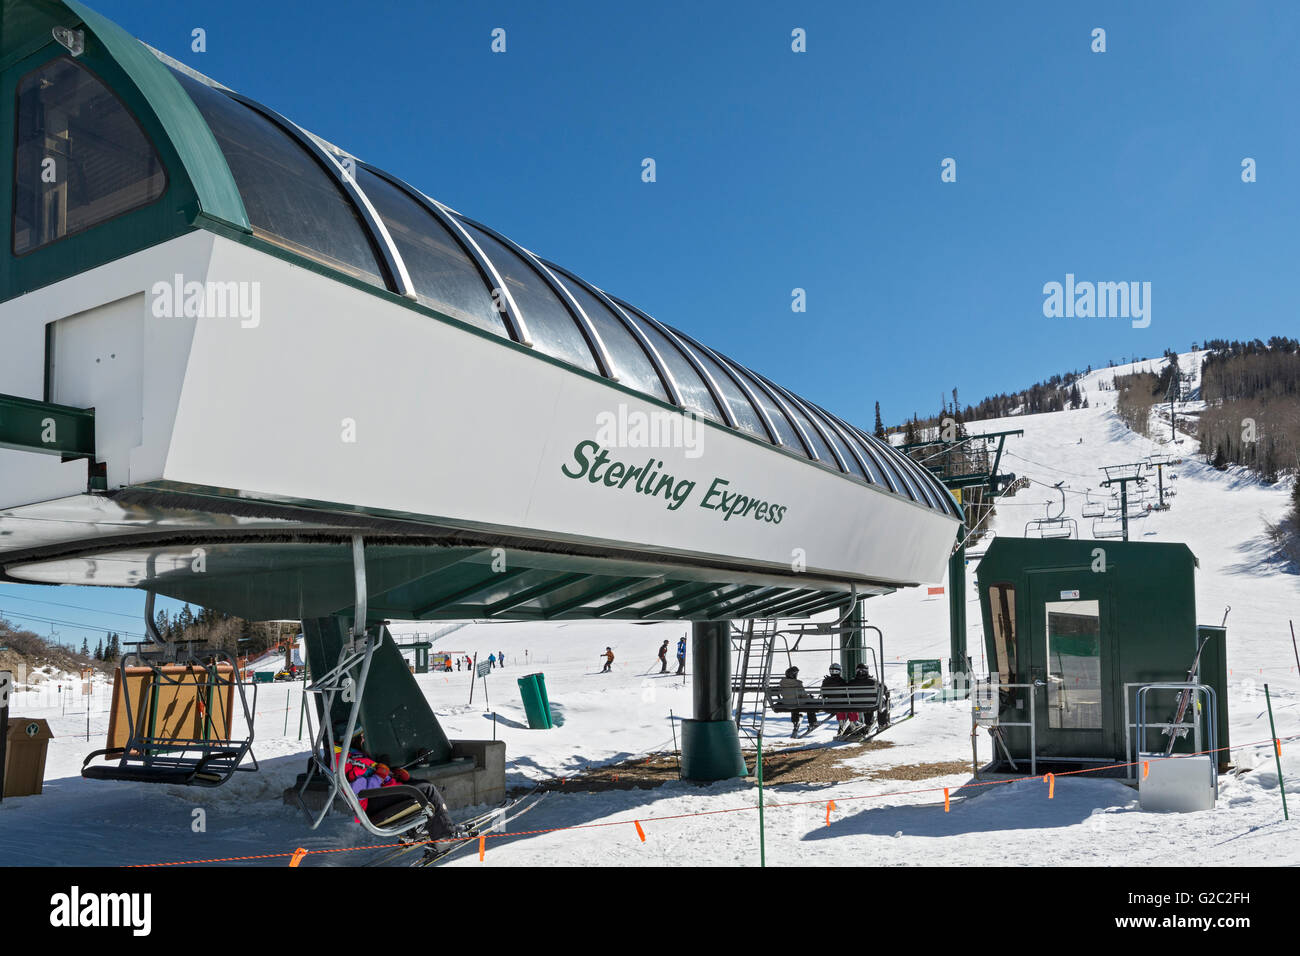 Park city utah stock photos park city utah stock images - No name saloon and grill park city ut ...